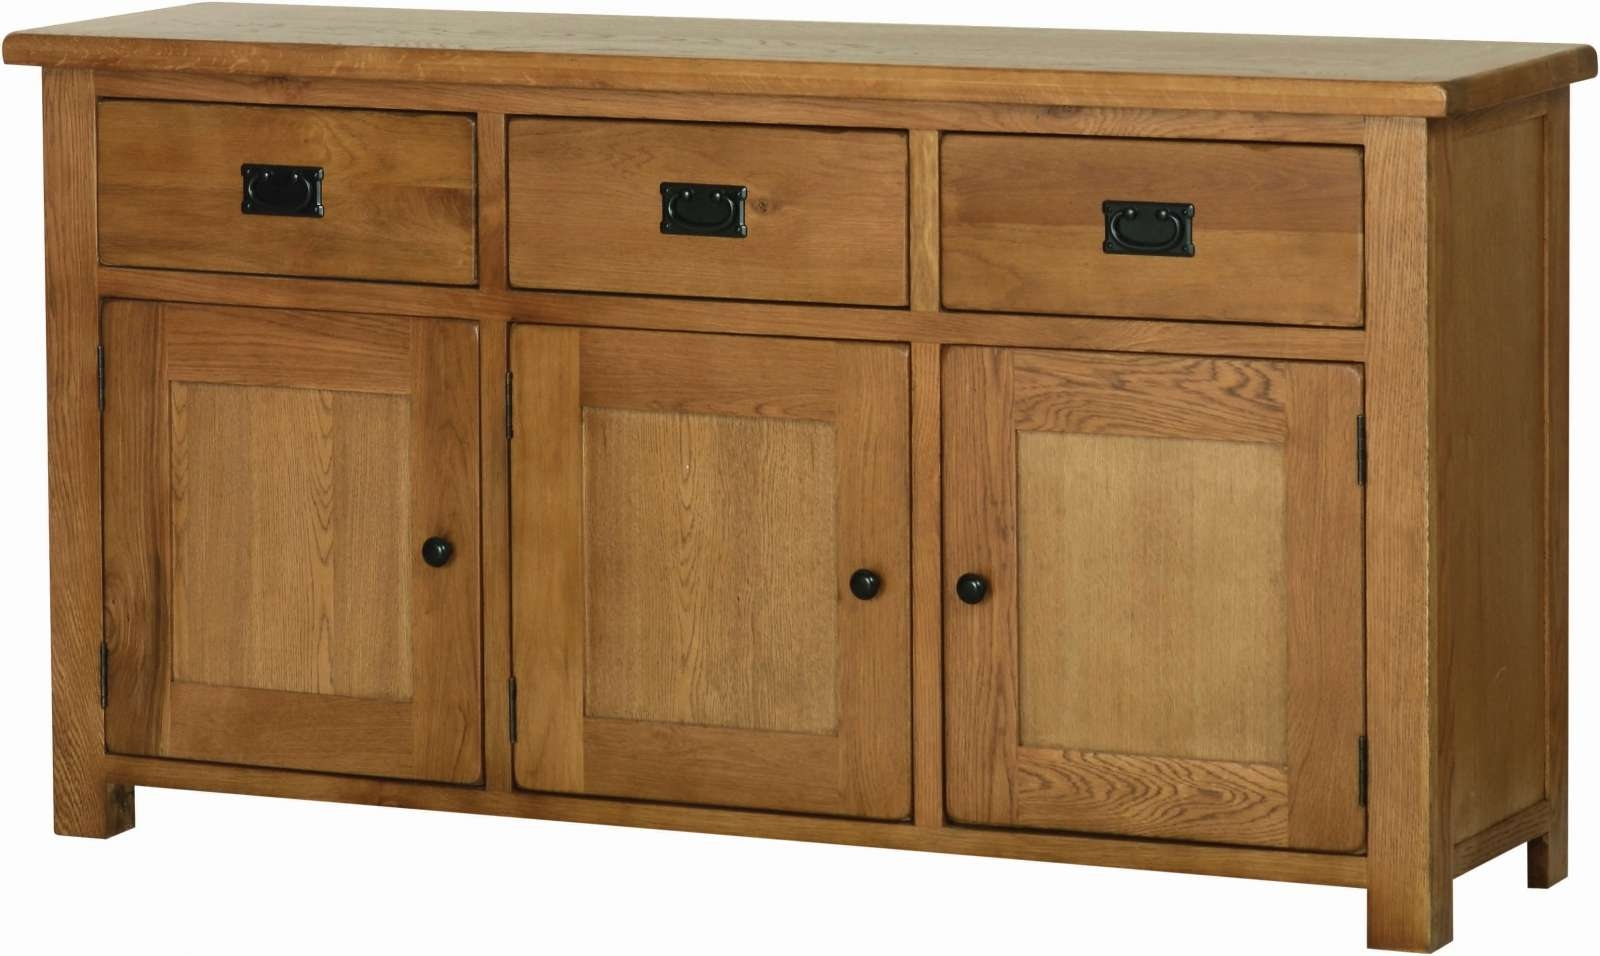 Oak Large Sideboard – Solid Wood & Painted Made To Measure Intended For Rustic Oak Large Sideboards (View 11 of 20)